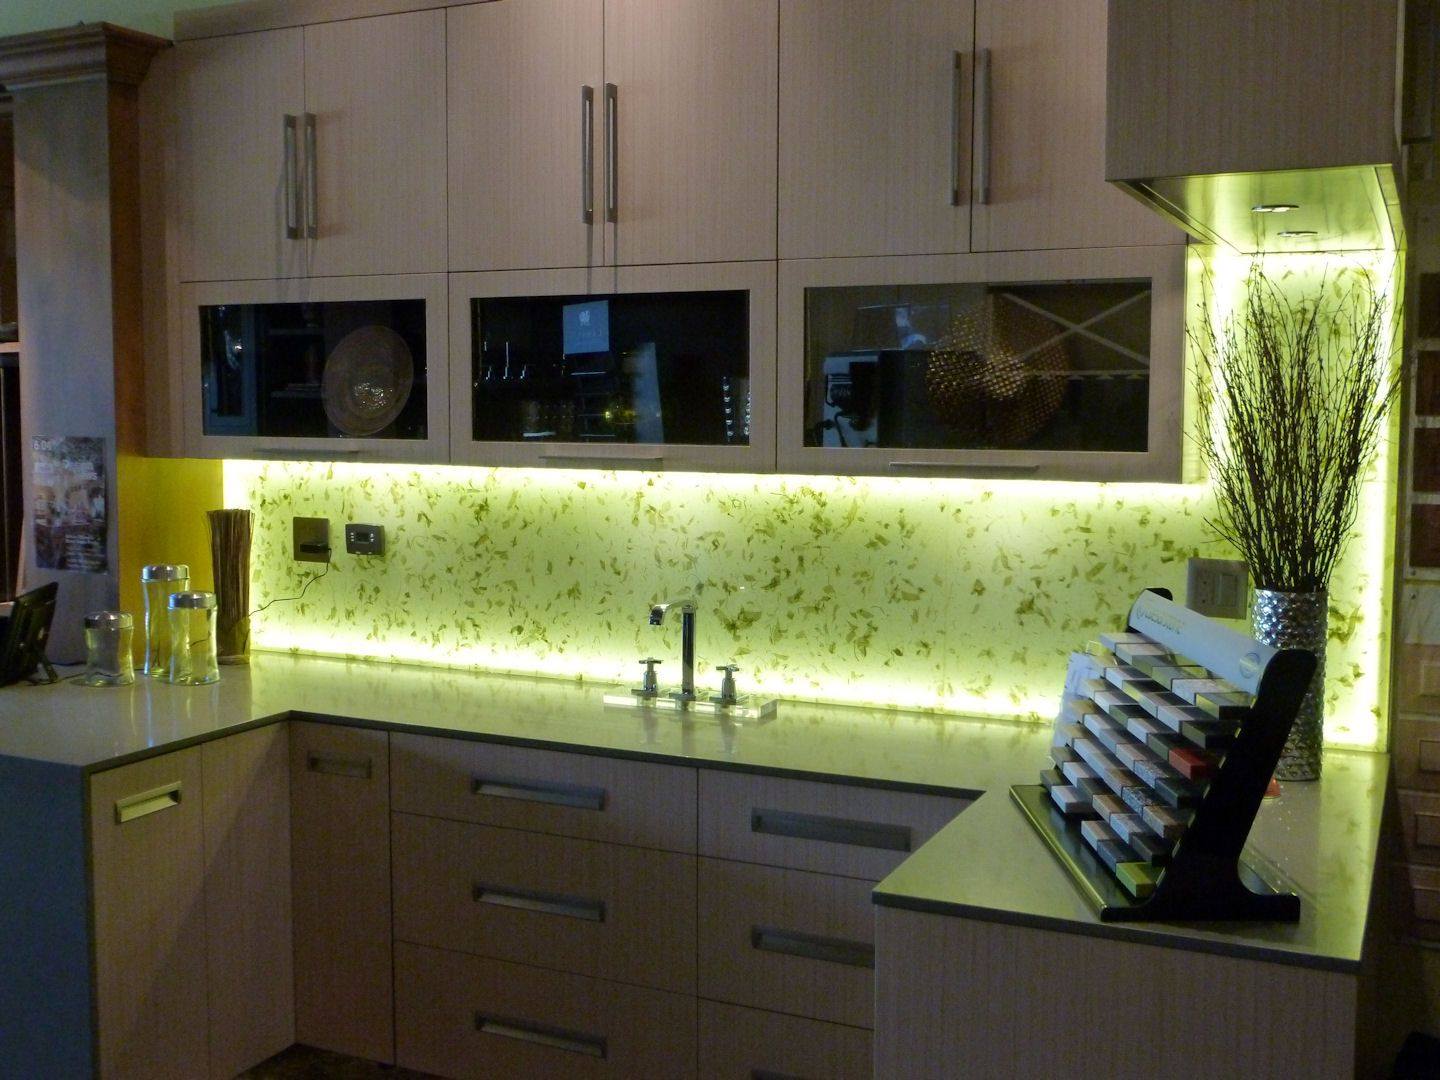 rice paper is laminated between two glass panels and back lit with led lighting for this